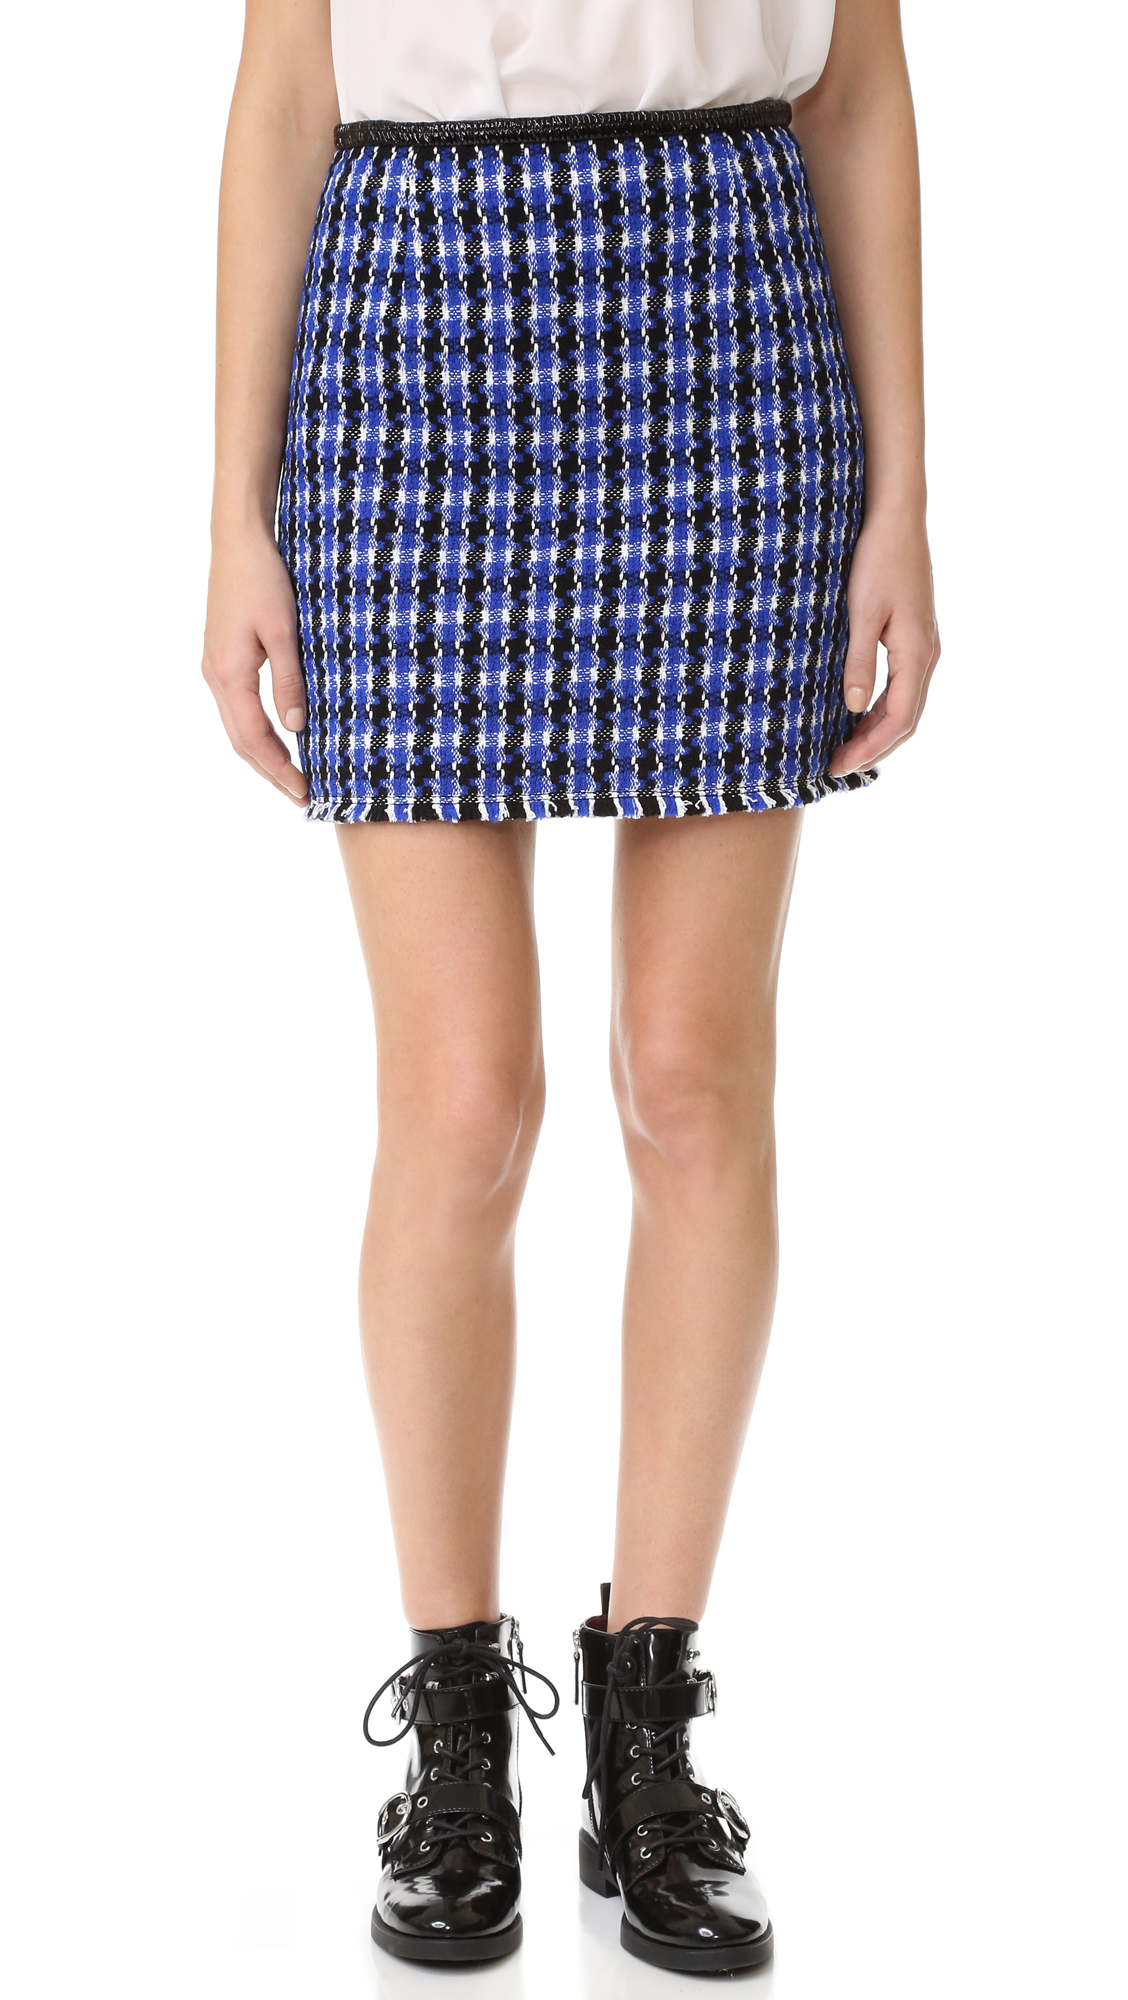 Marc Jacobs Vinyl Skirt - Royal Blue